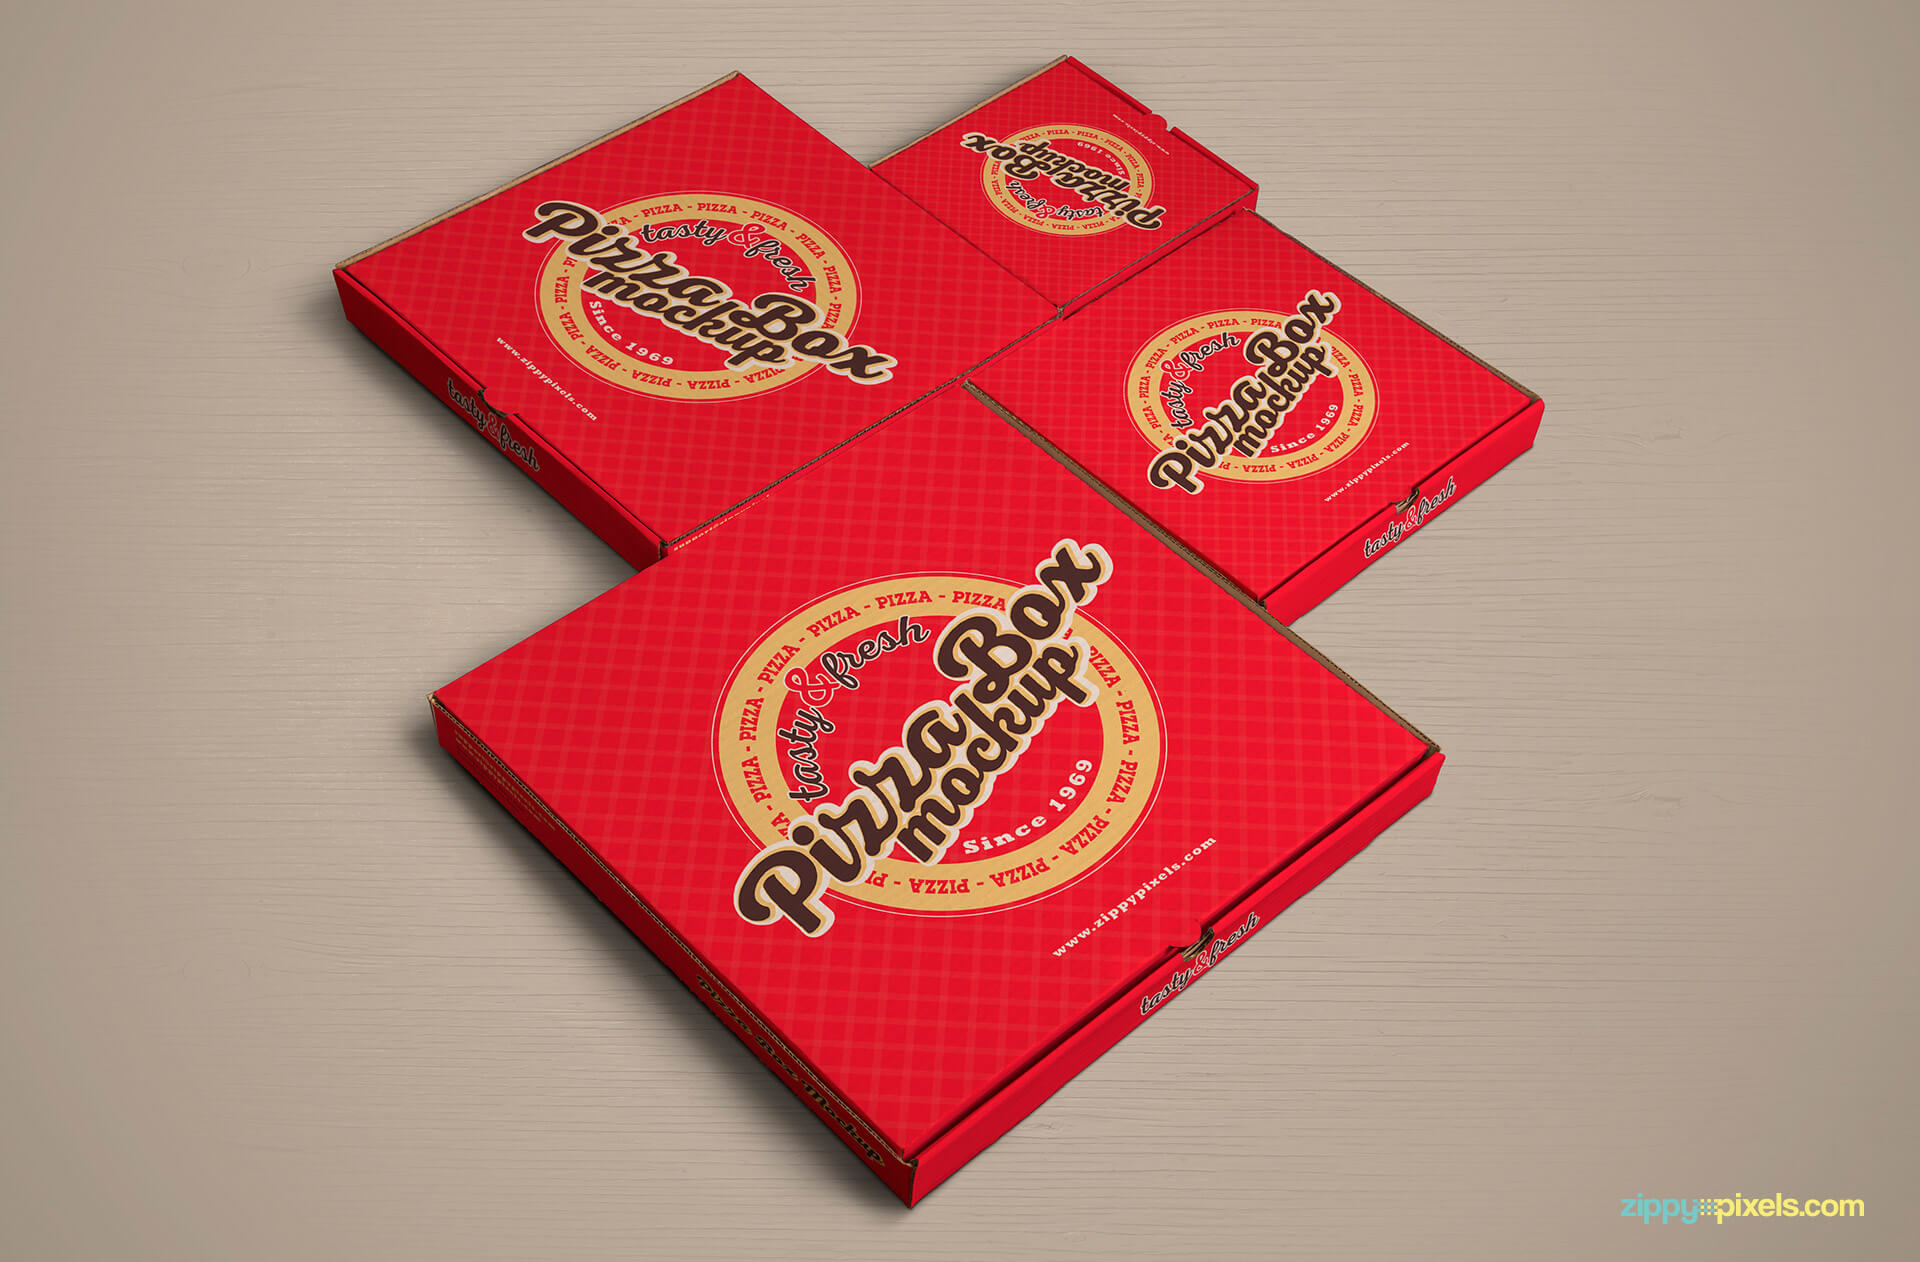 Pizzabox cover design mockup PSD.